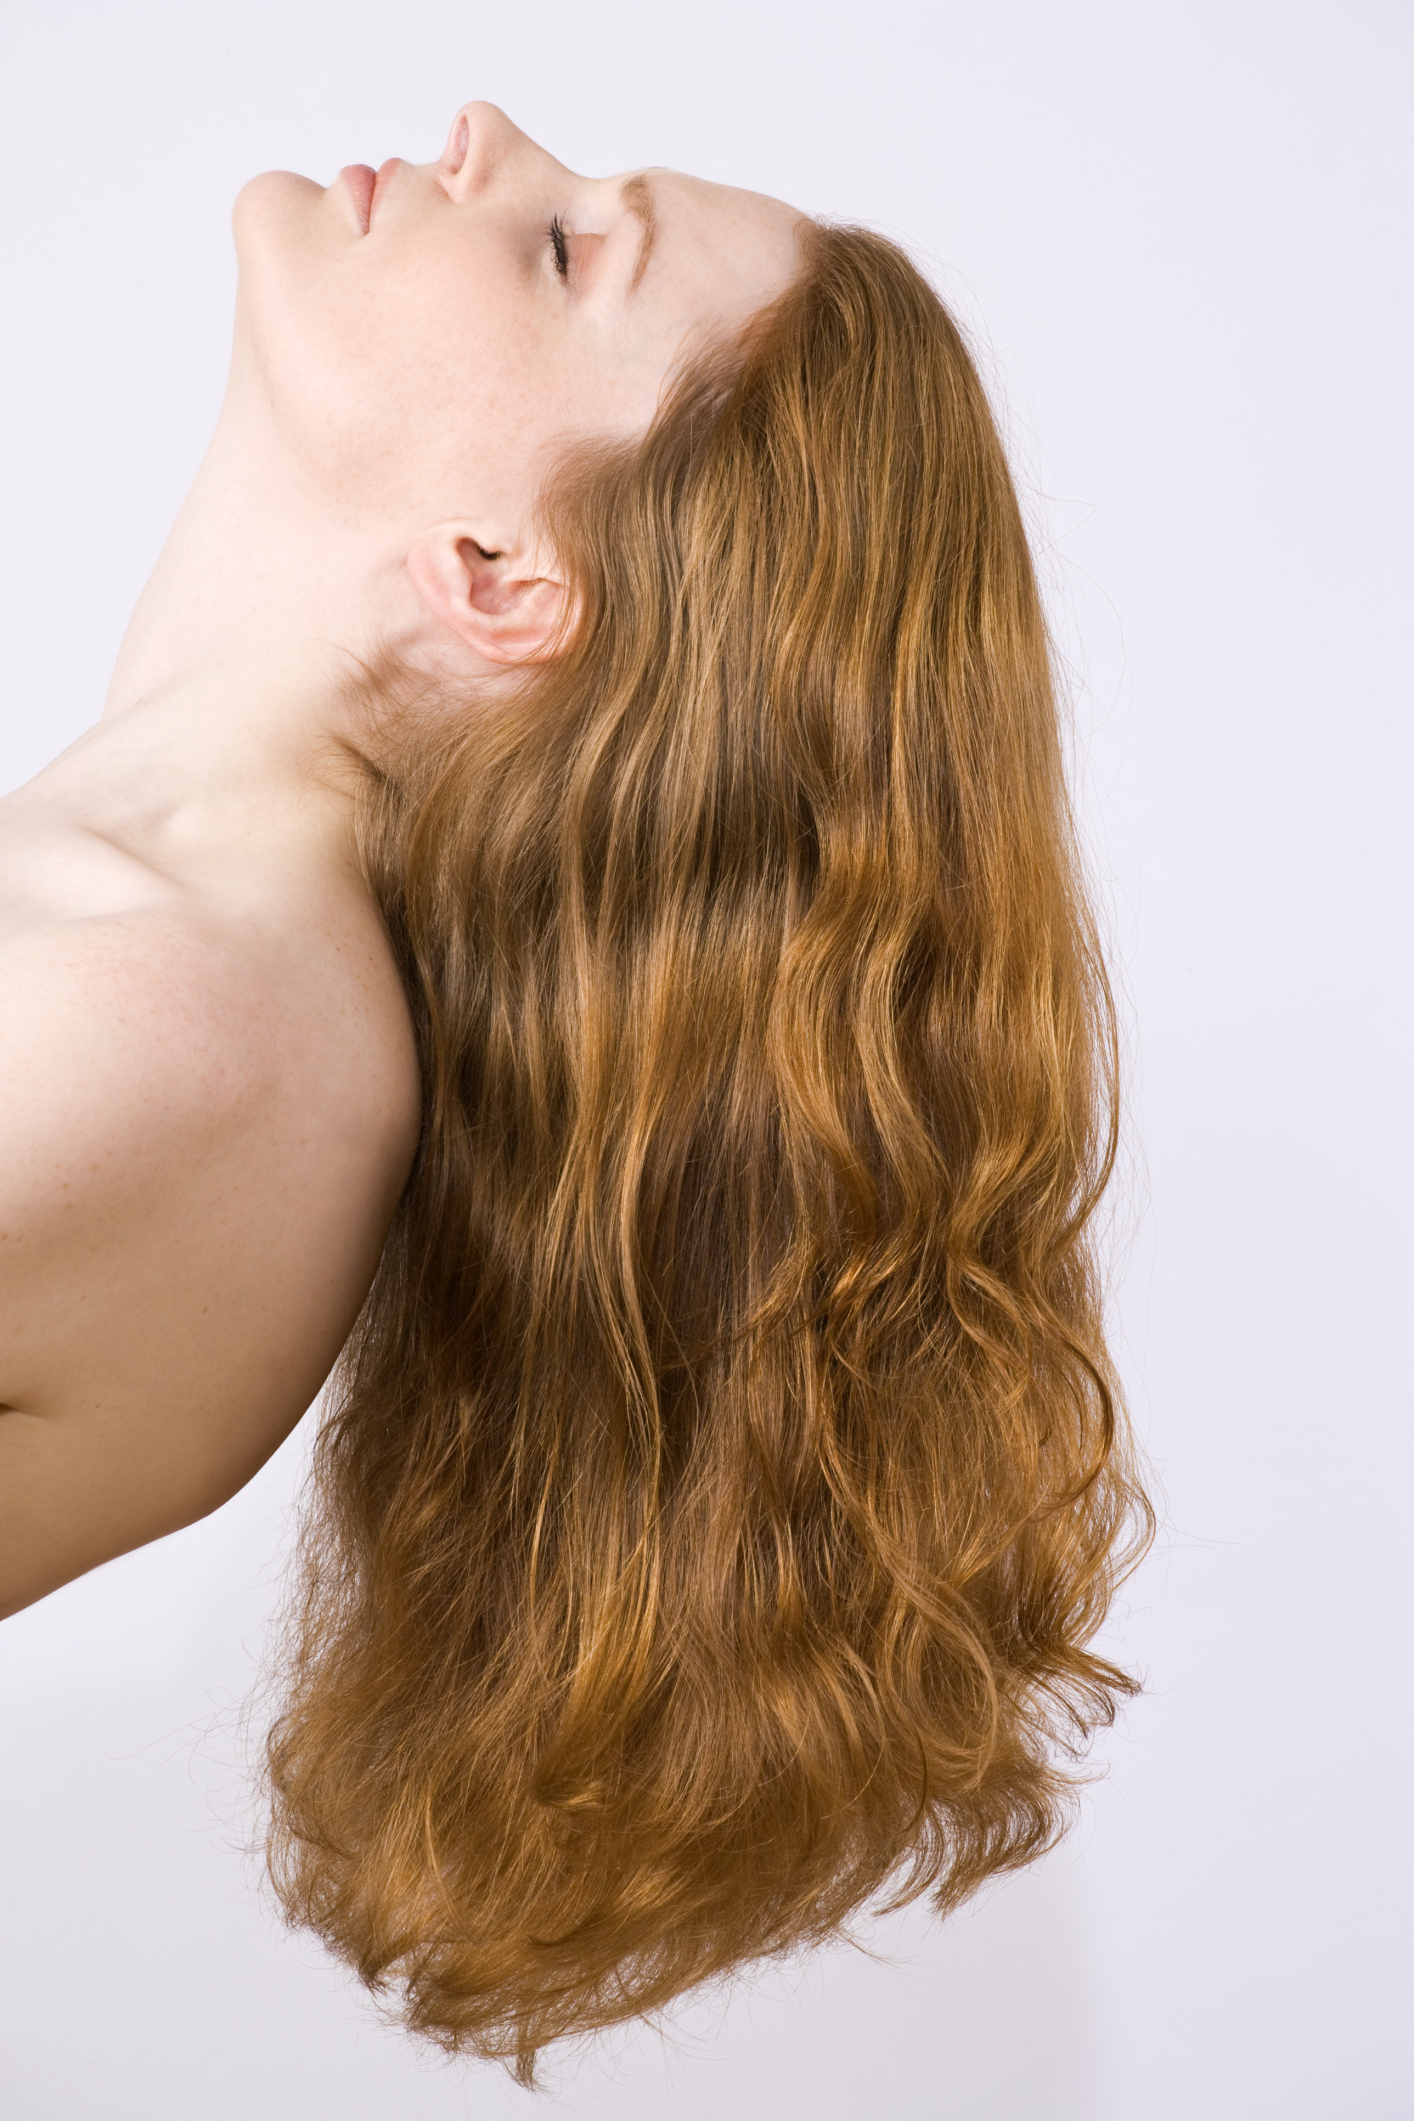 The amino acid lysine helps ensure healthy hair.